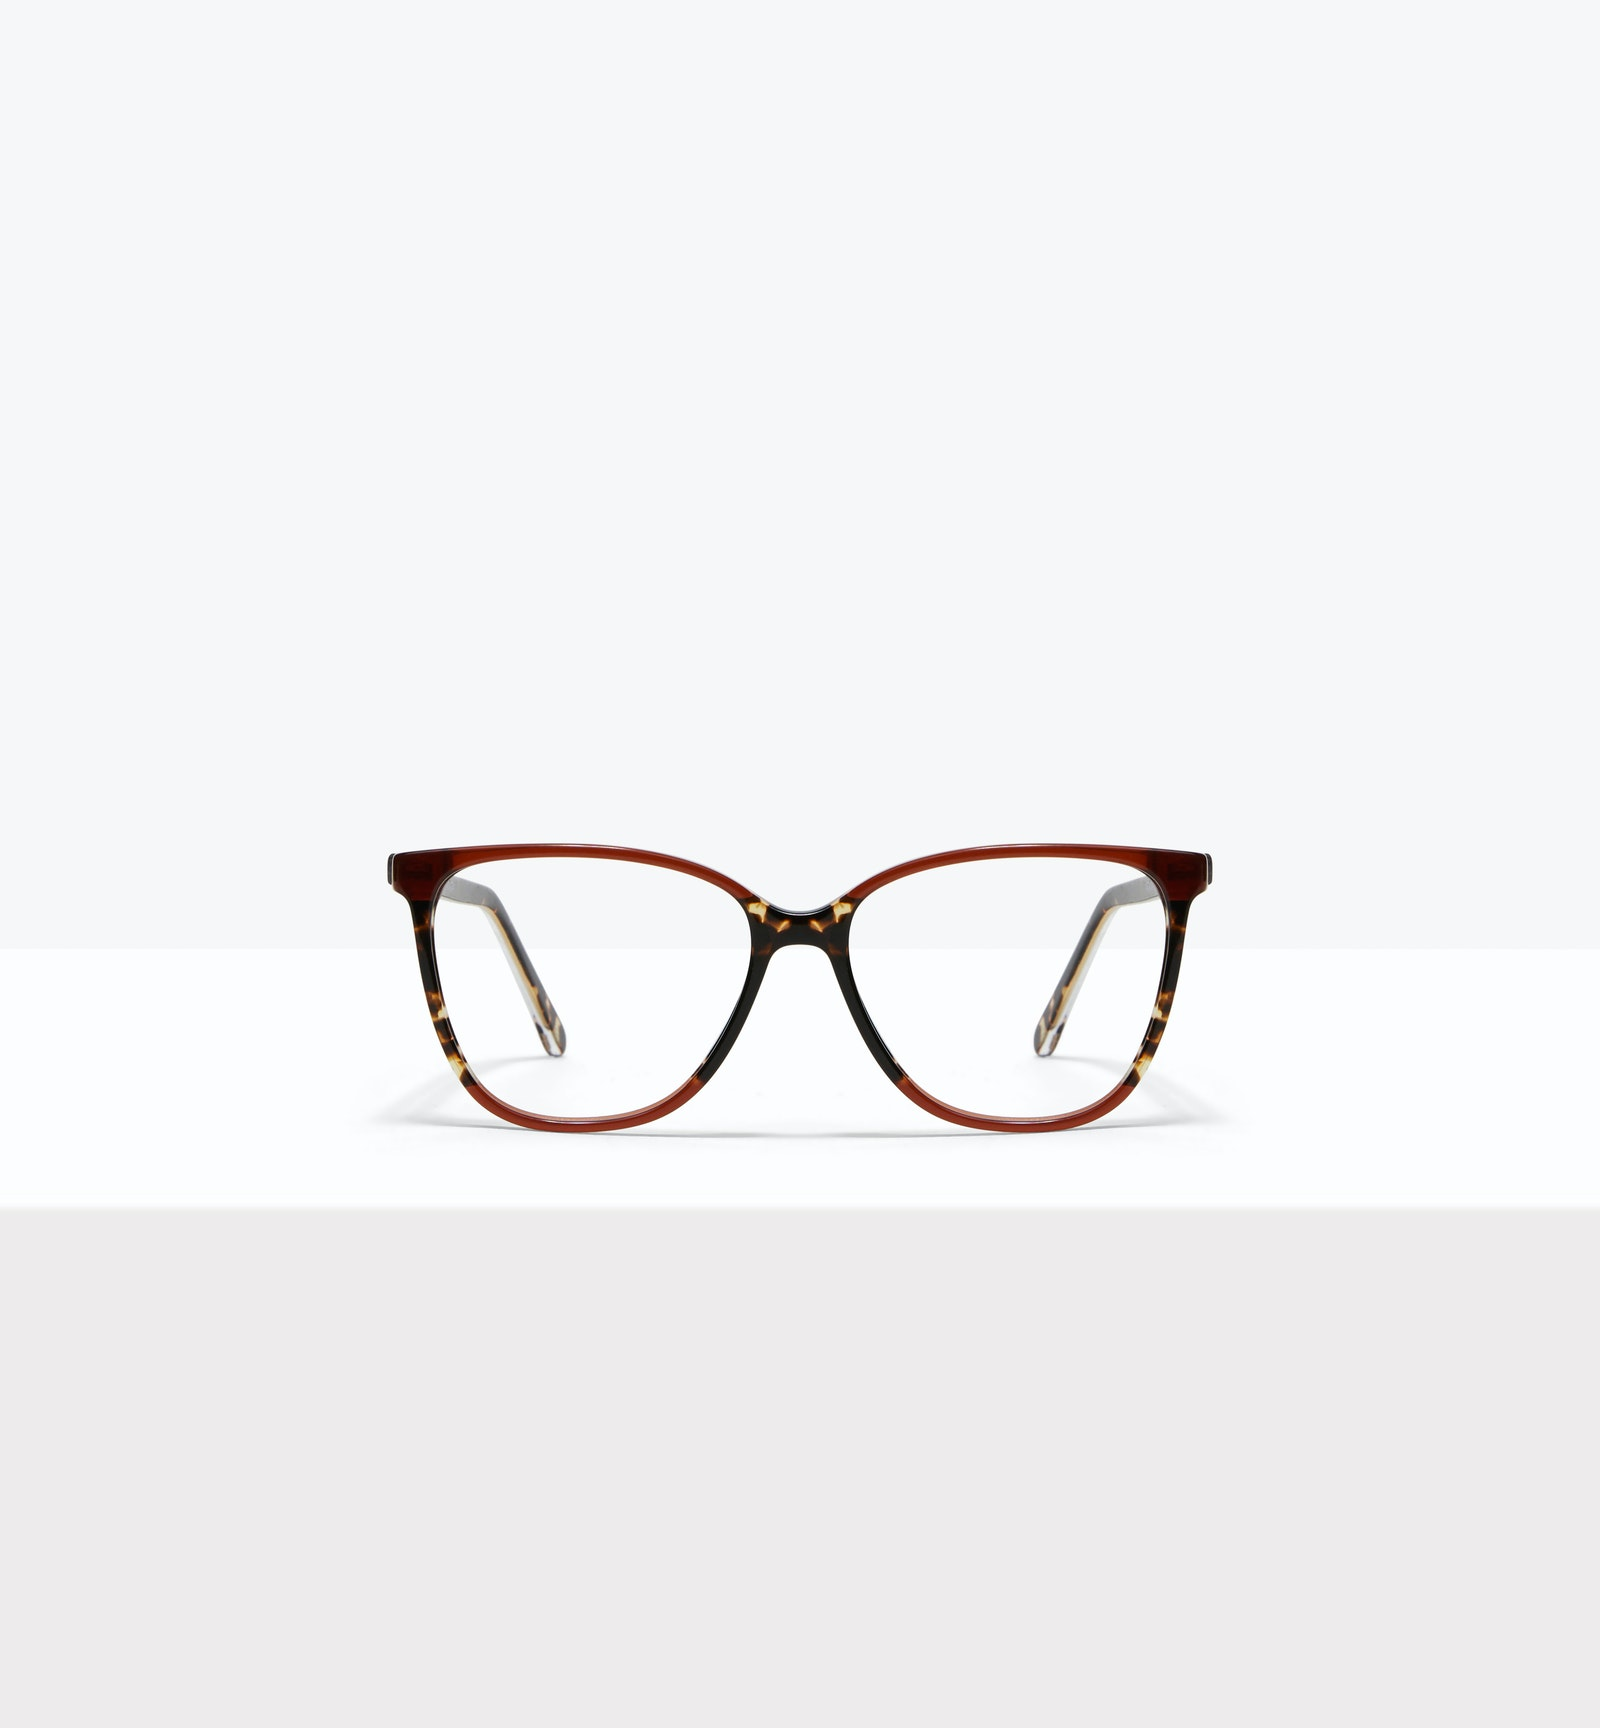 Affordable Fashion Glasses Square Eyeglasses Women Flora Aurora